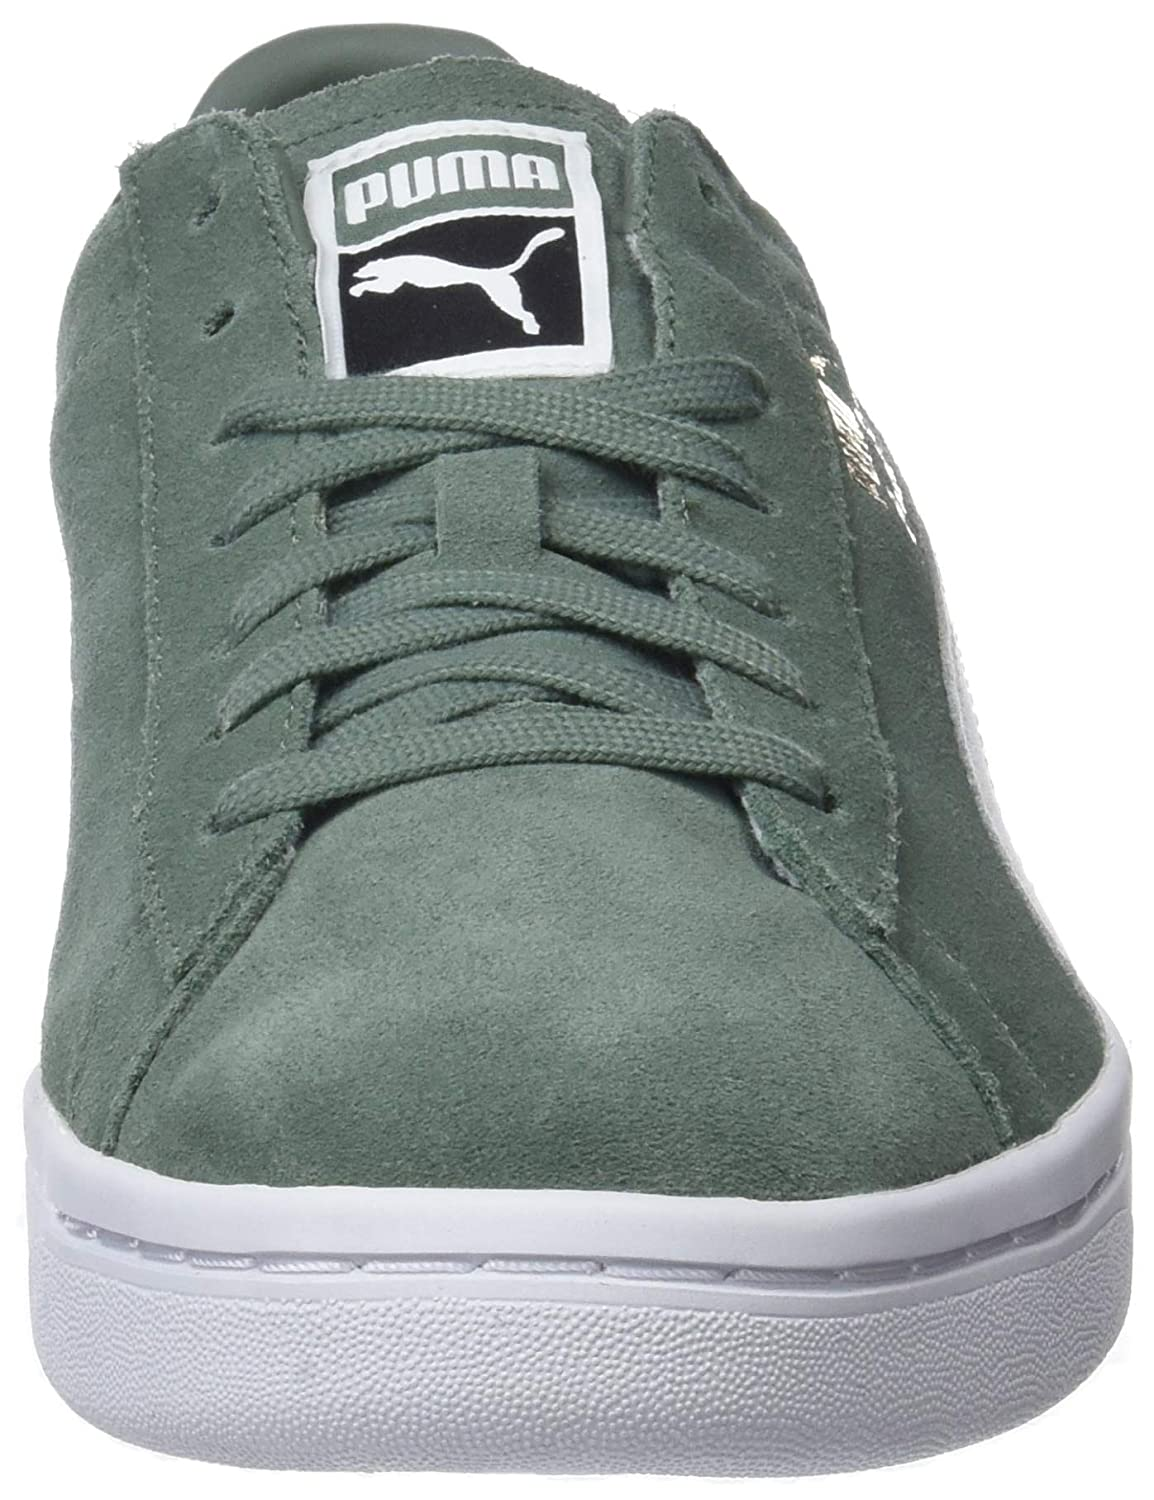 Gentleman/Lady Puma Unisex Unisex Unisex Adults' Court Star Fs Low-Top Sneakers Queensland Wholesale trade General product HW8152 c7ca58